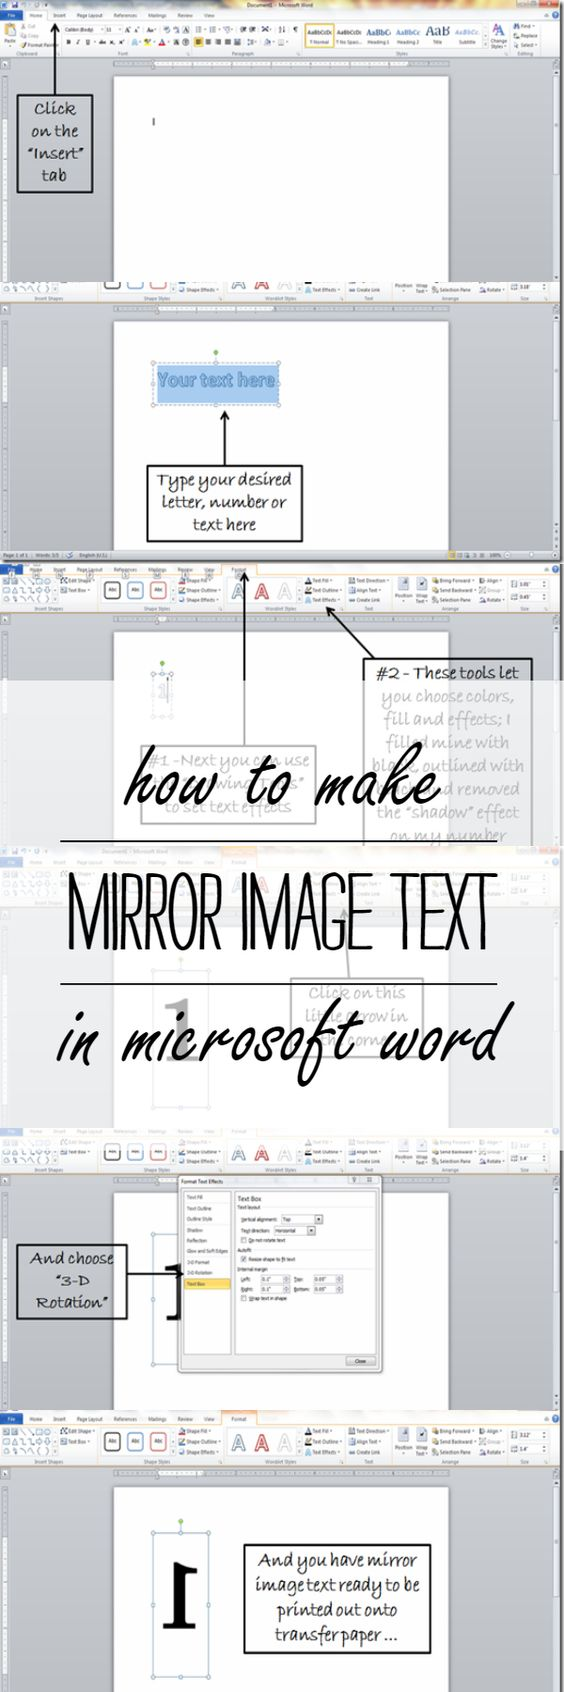 mirror will template - microsoft texts and tutorials on pinterest